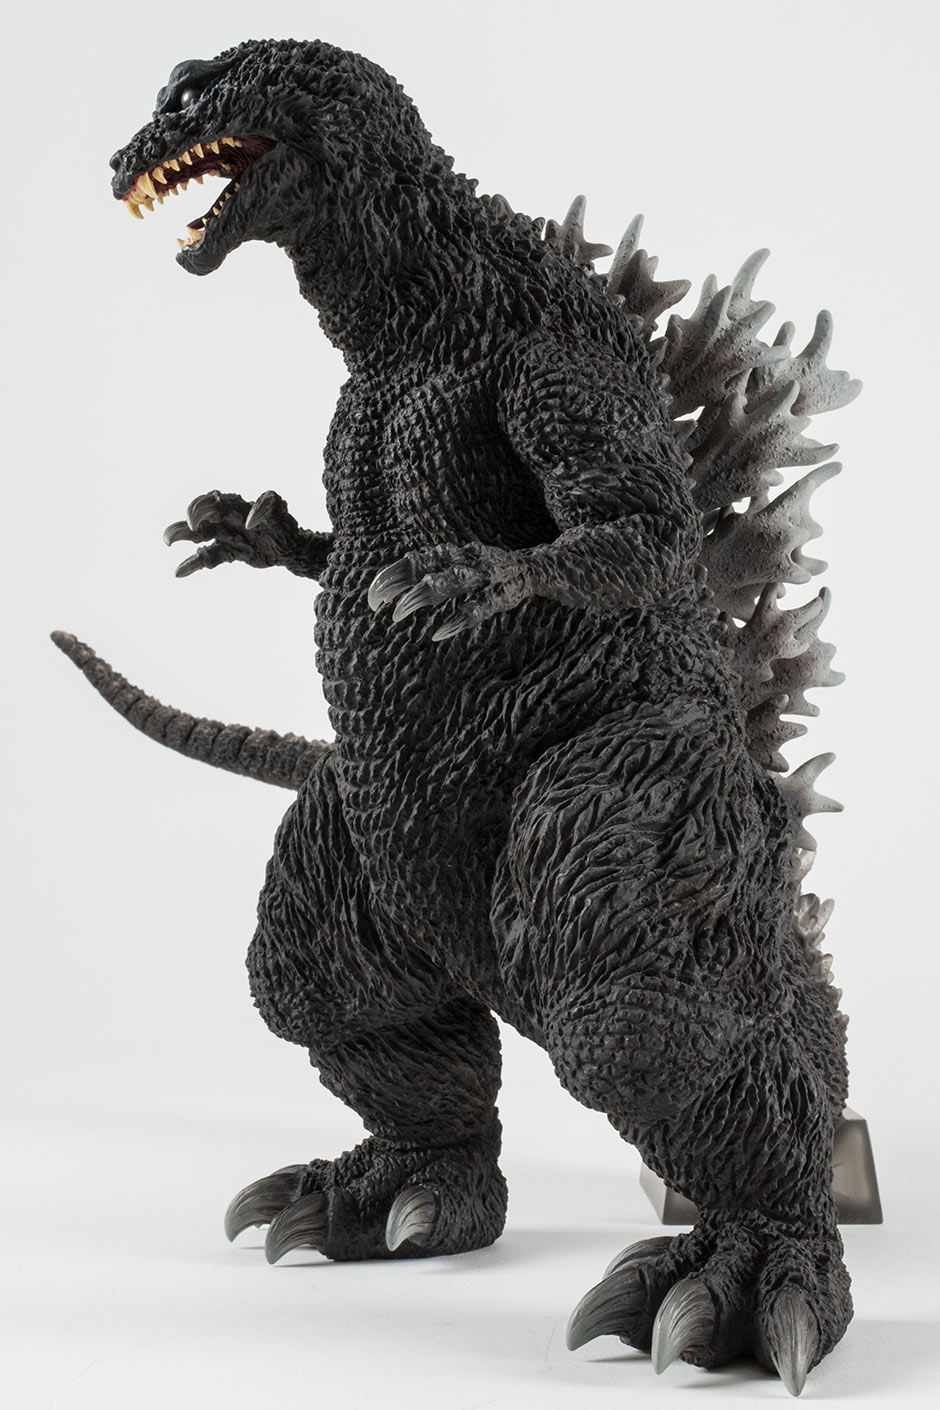 Toho 30cm Series Yuji Sakai Modeling Collection Godzilla 2001 vinyl figure by X-Plus.